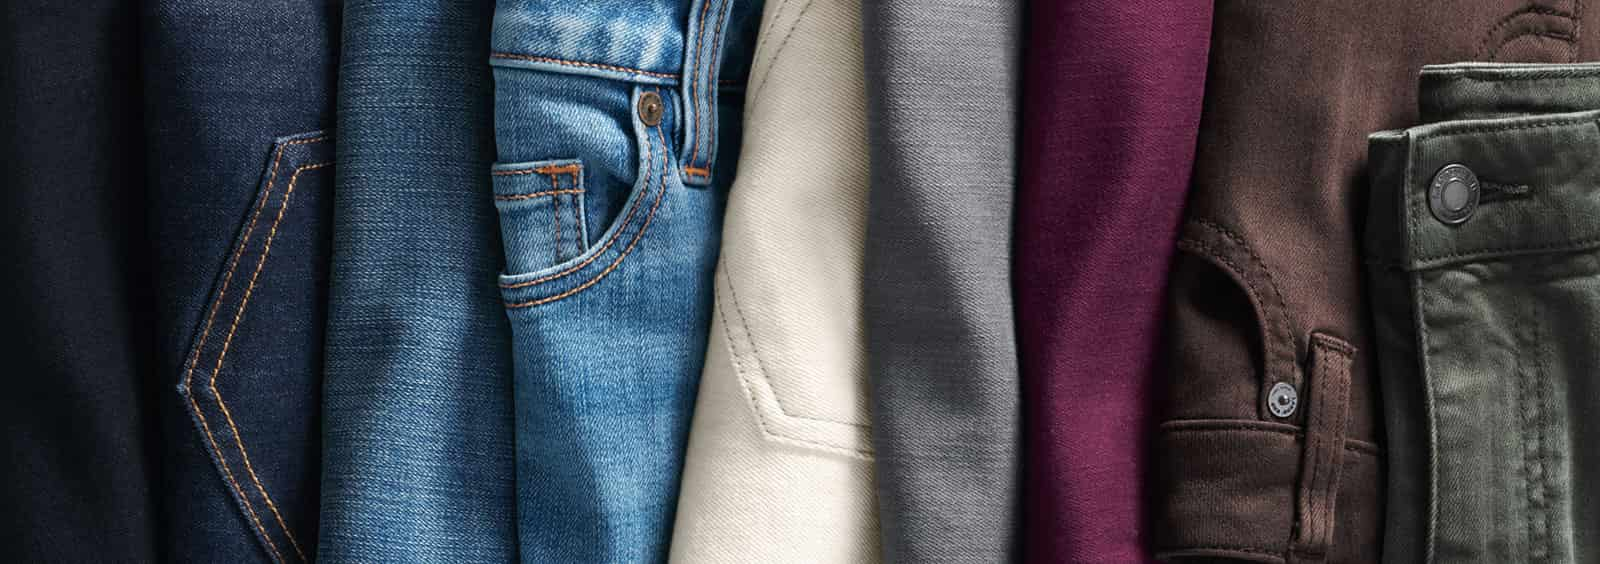 5 Types of Jeans You Can Live in All Winter Long